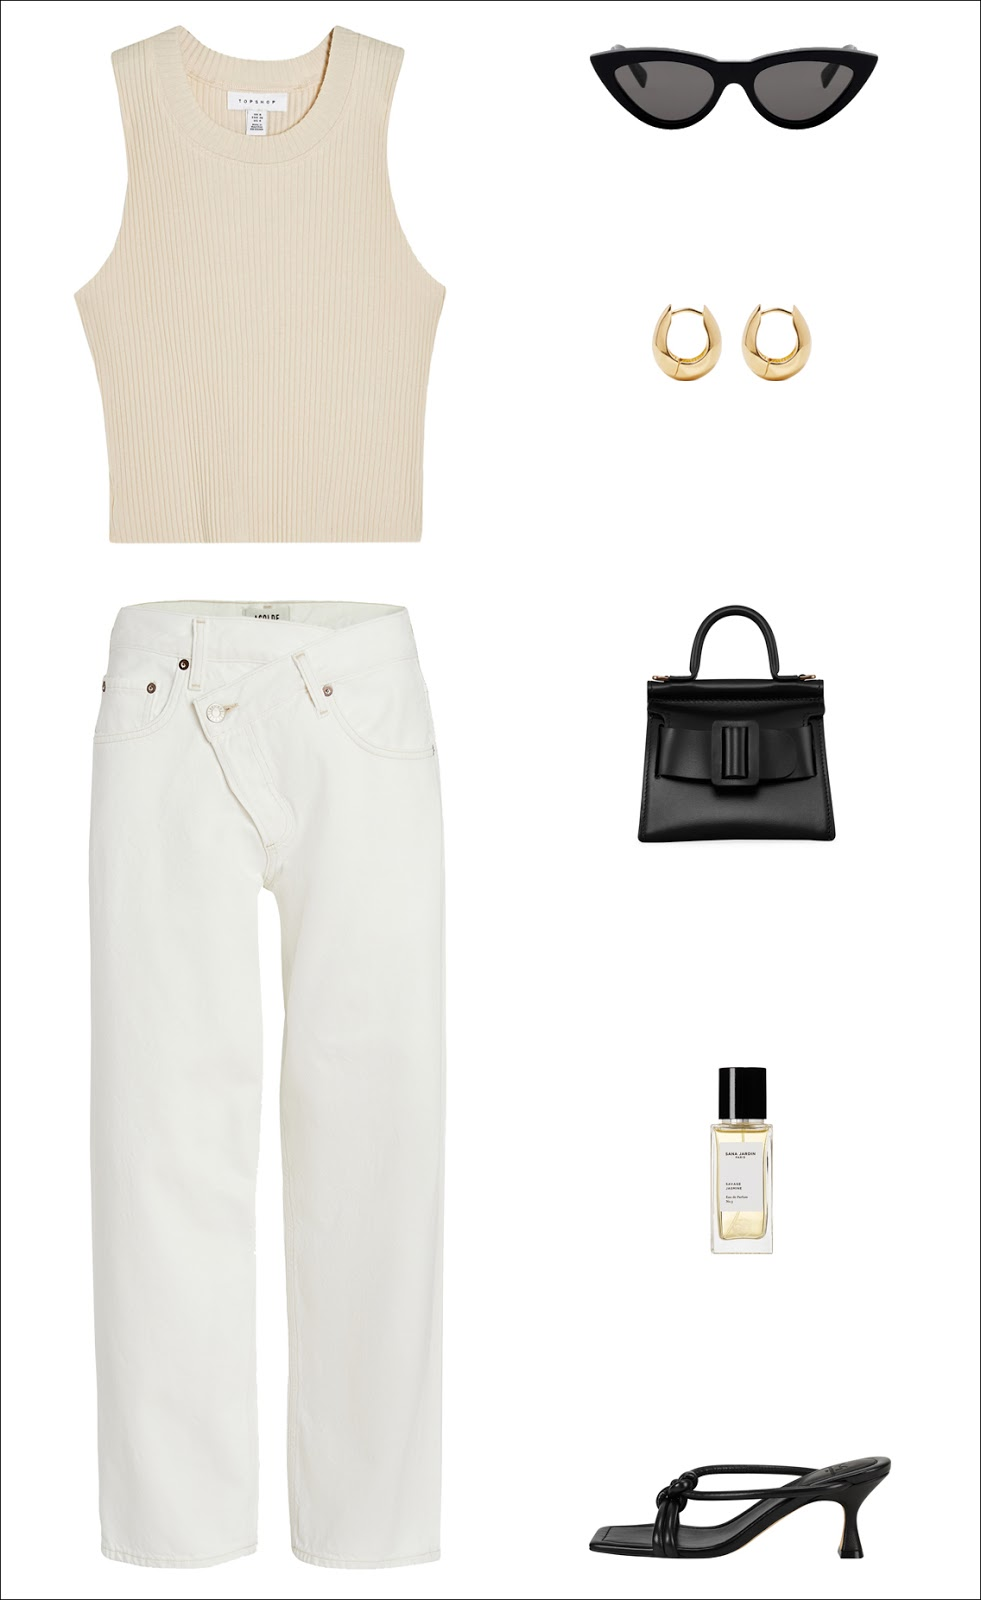 Stylish Way to Wear White Jeans for Summer — black cat-eye sunglasses, a beige tank top, yellow-gold hoop earrings, a cool black mini bag, white straight-leg jeans, and strappy black mule heels